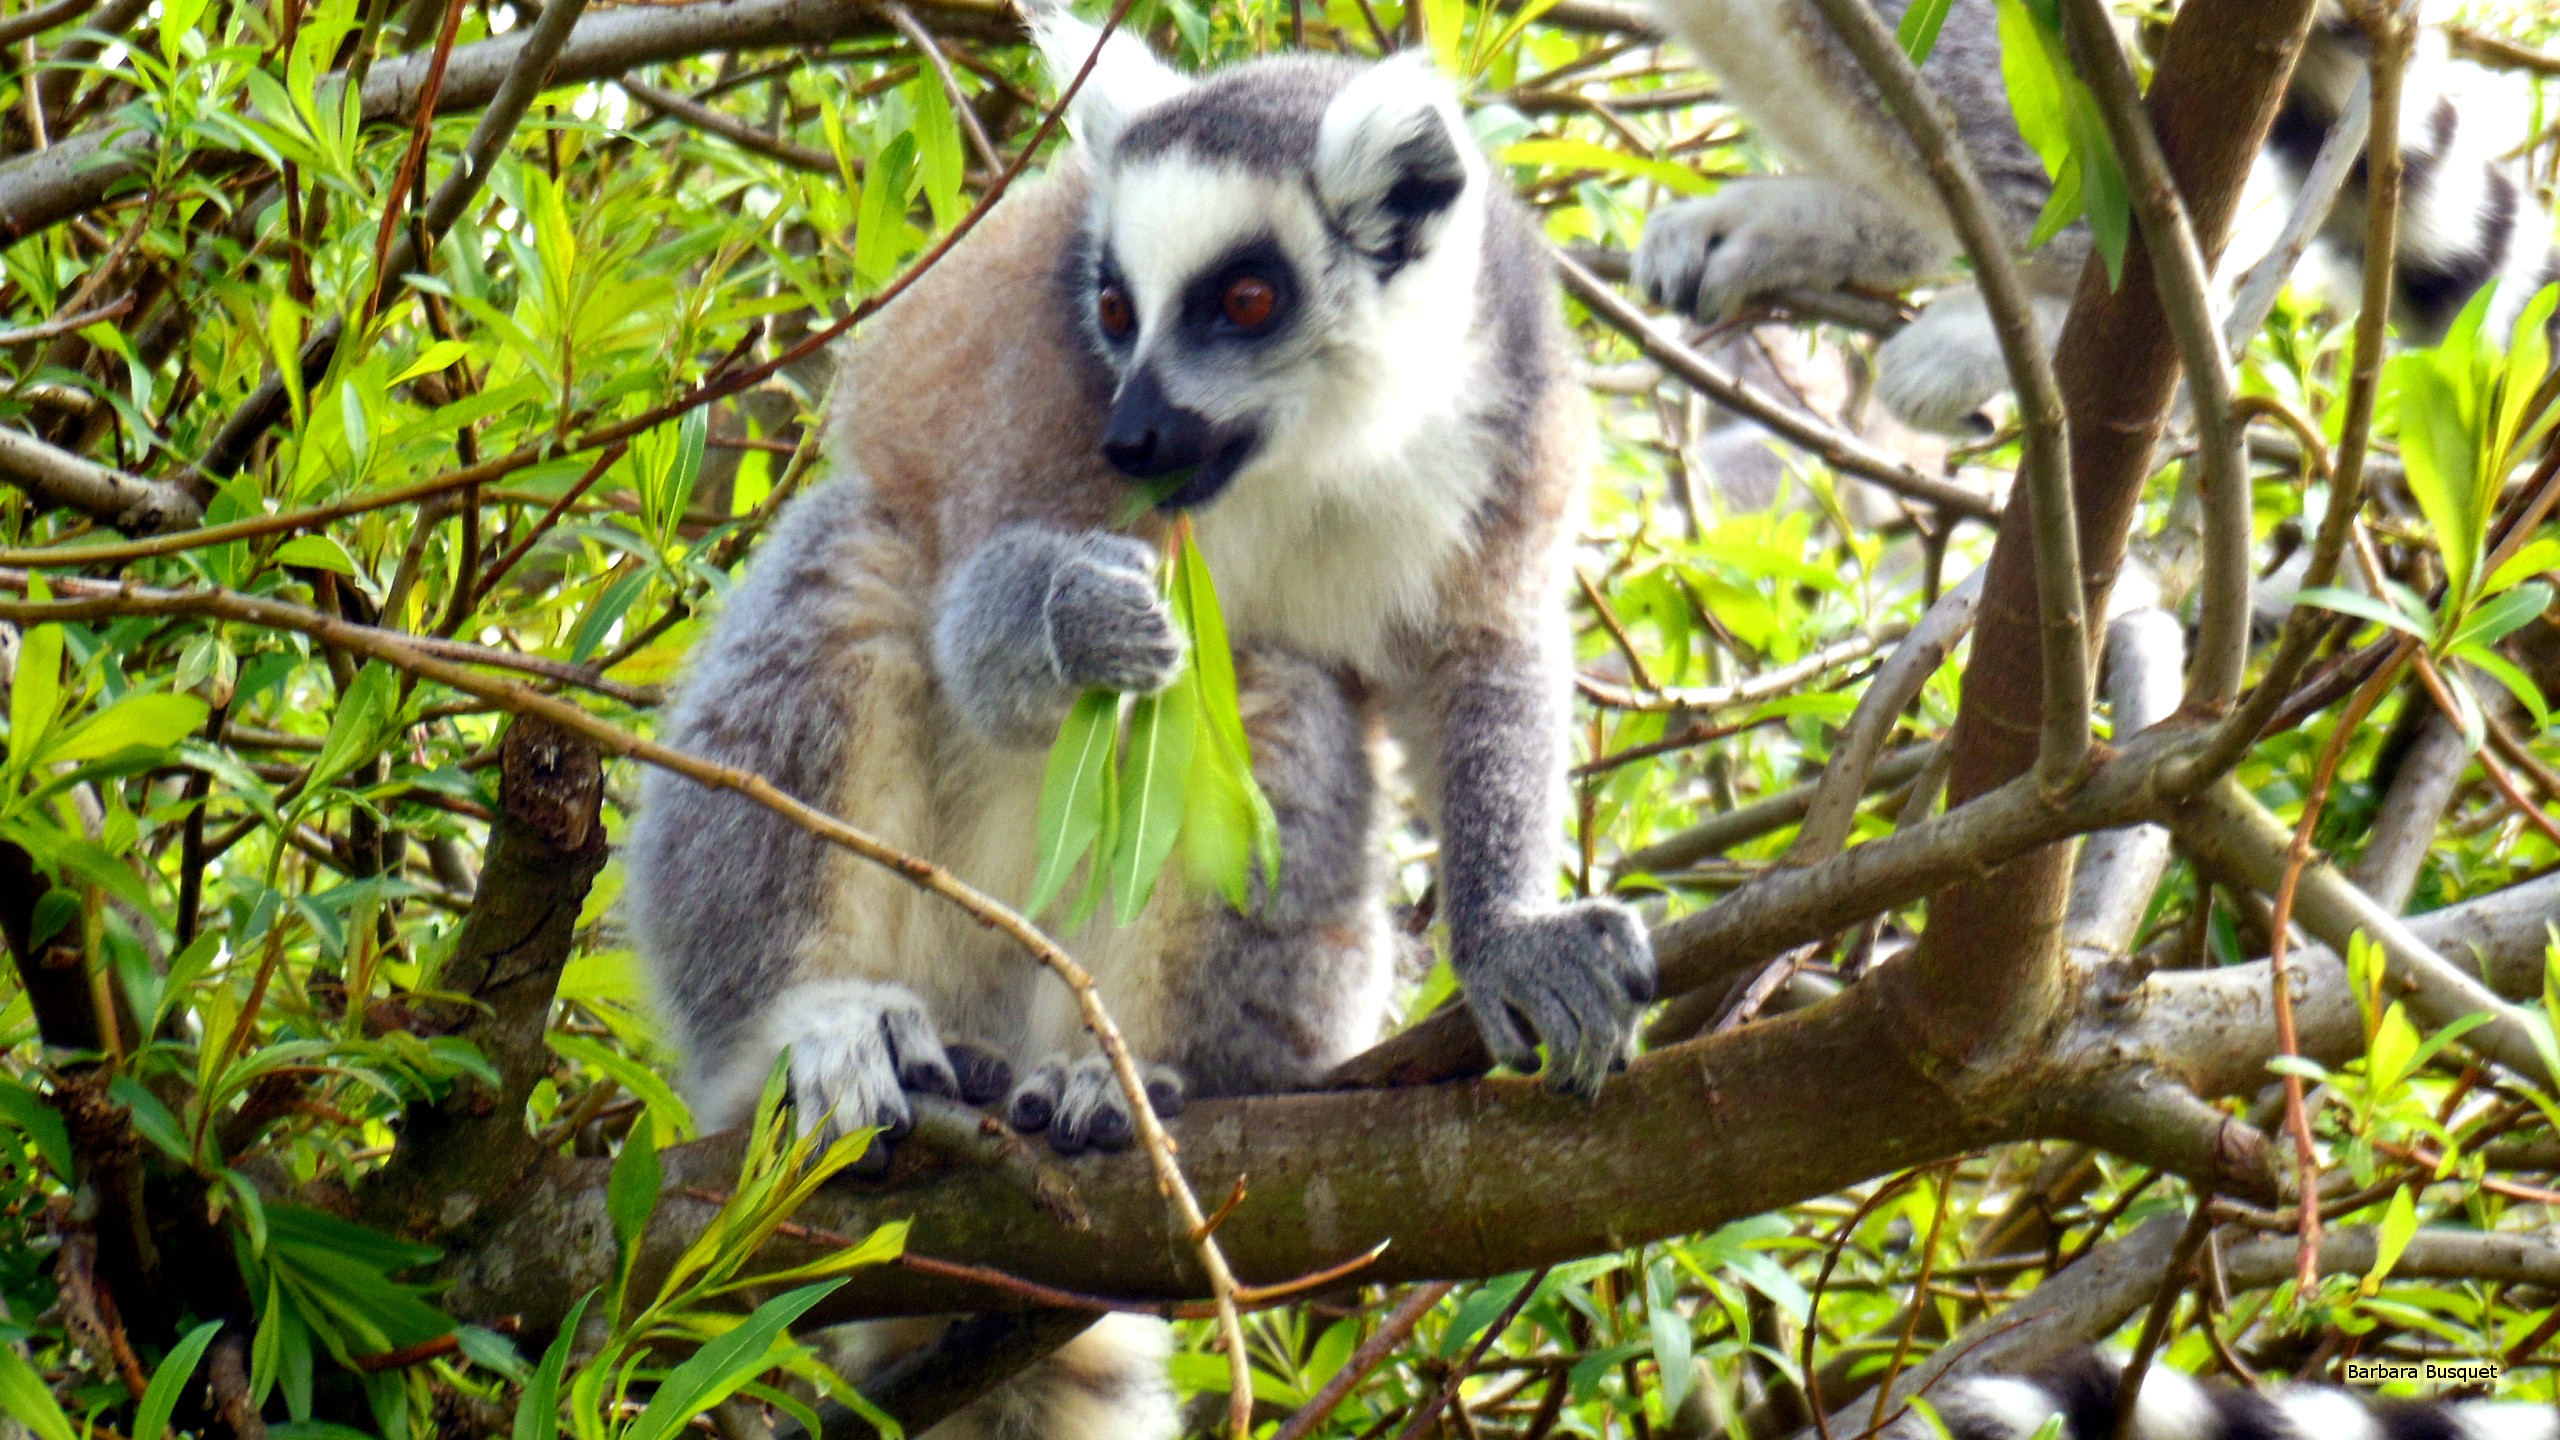 Res: 2560x1440, HD wallpaper ring-tailed lemur in tree